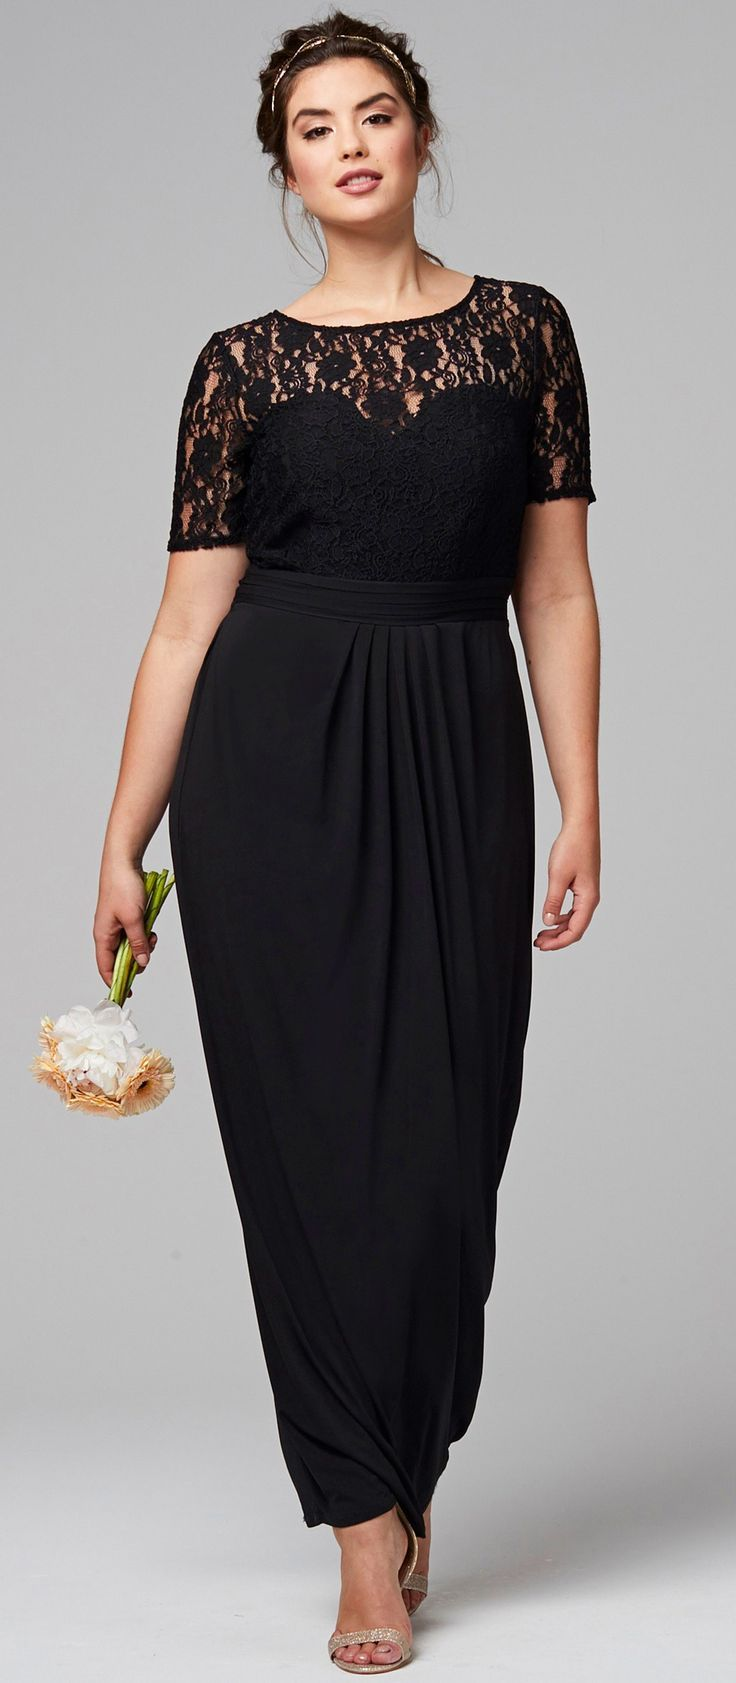 Fashion style Size plus black dress for wedding for woman